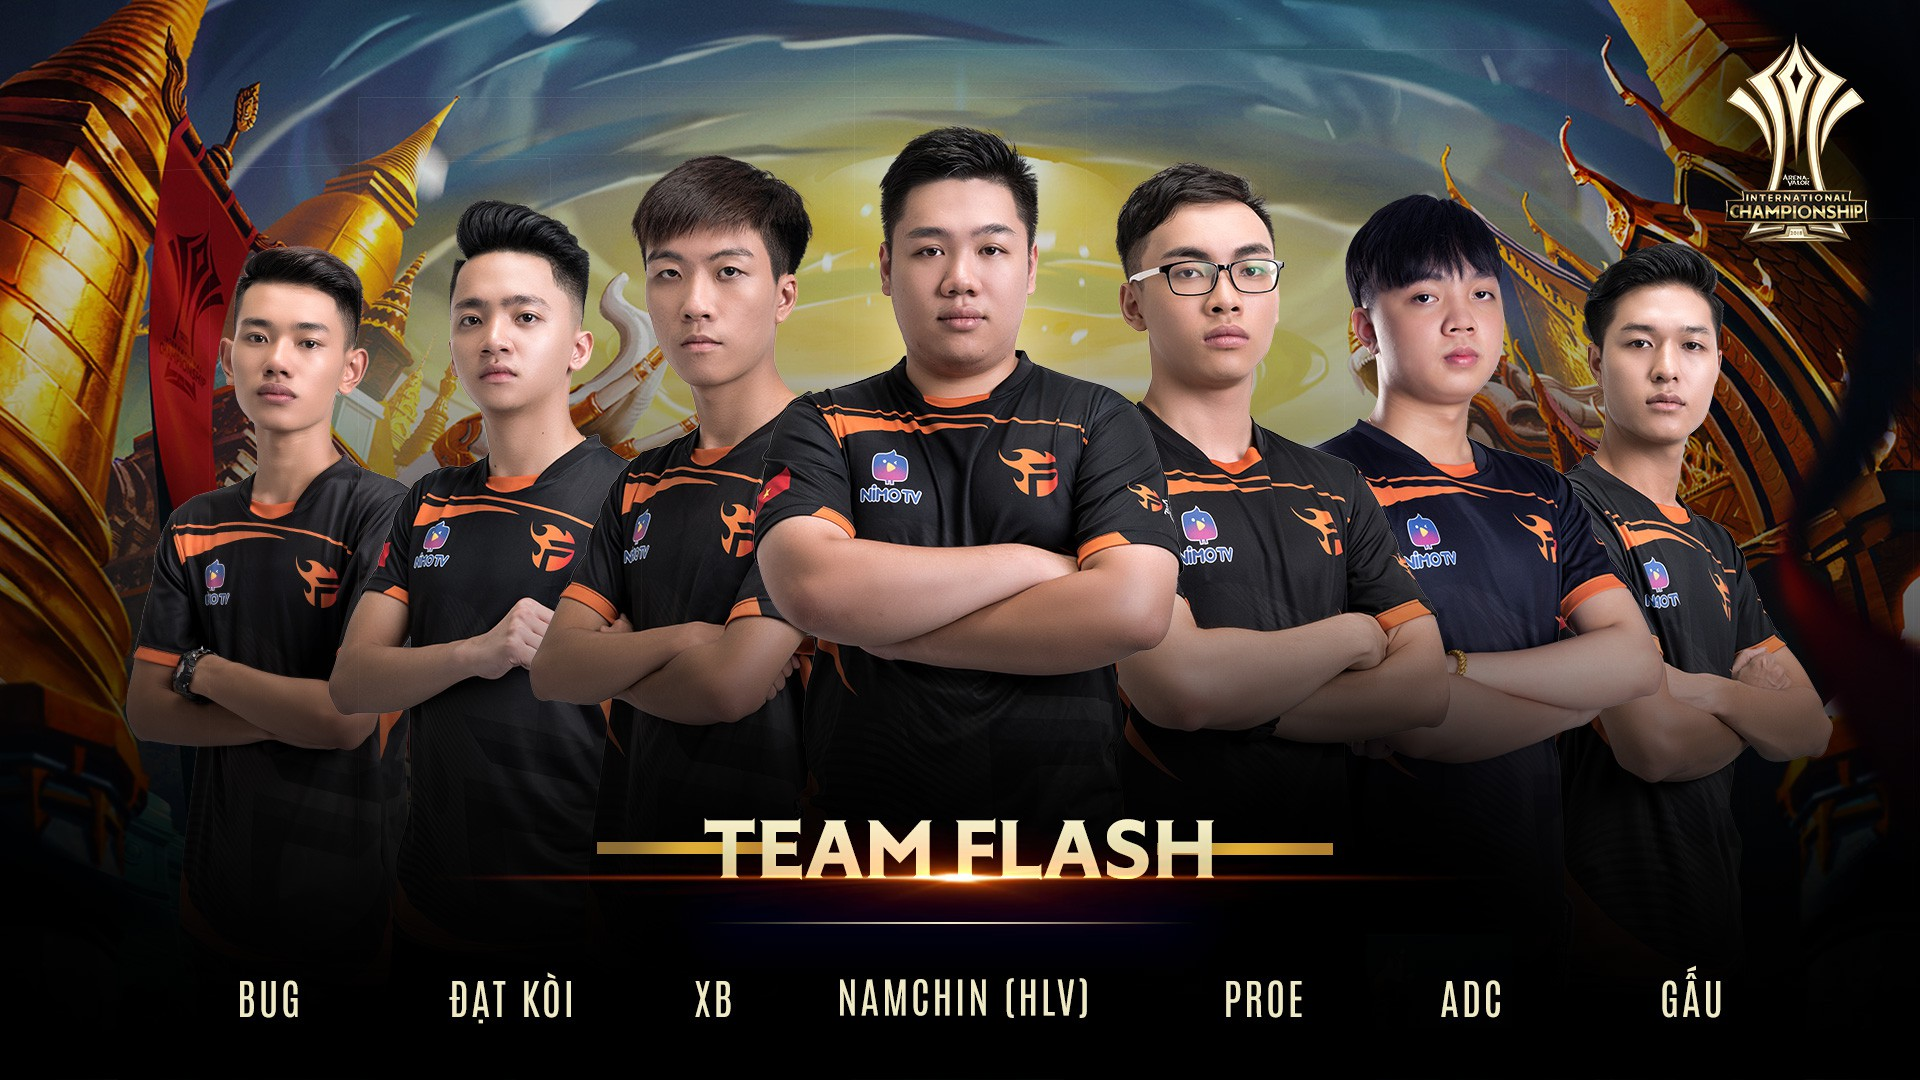 Team Flash lọt vào top 4 đội tuyển mạnh nhất thế giới tại AIC 2018